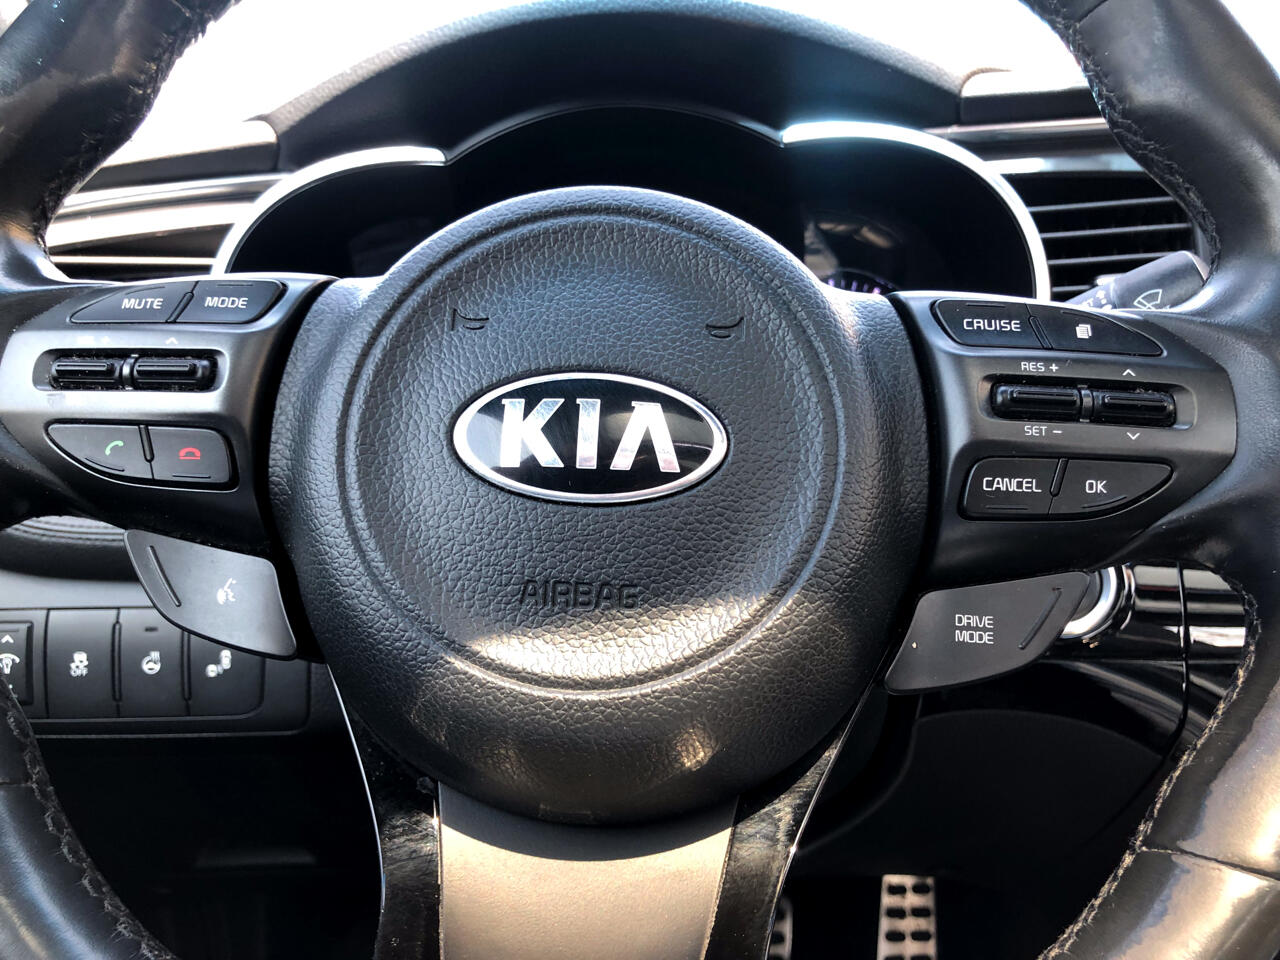 2014 Kia Optima 4dr Sdn SXL Turbo